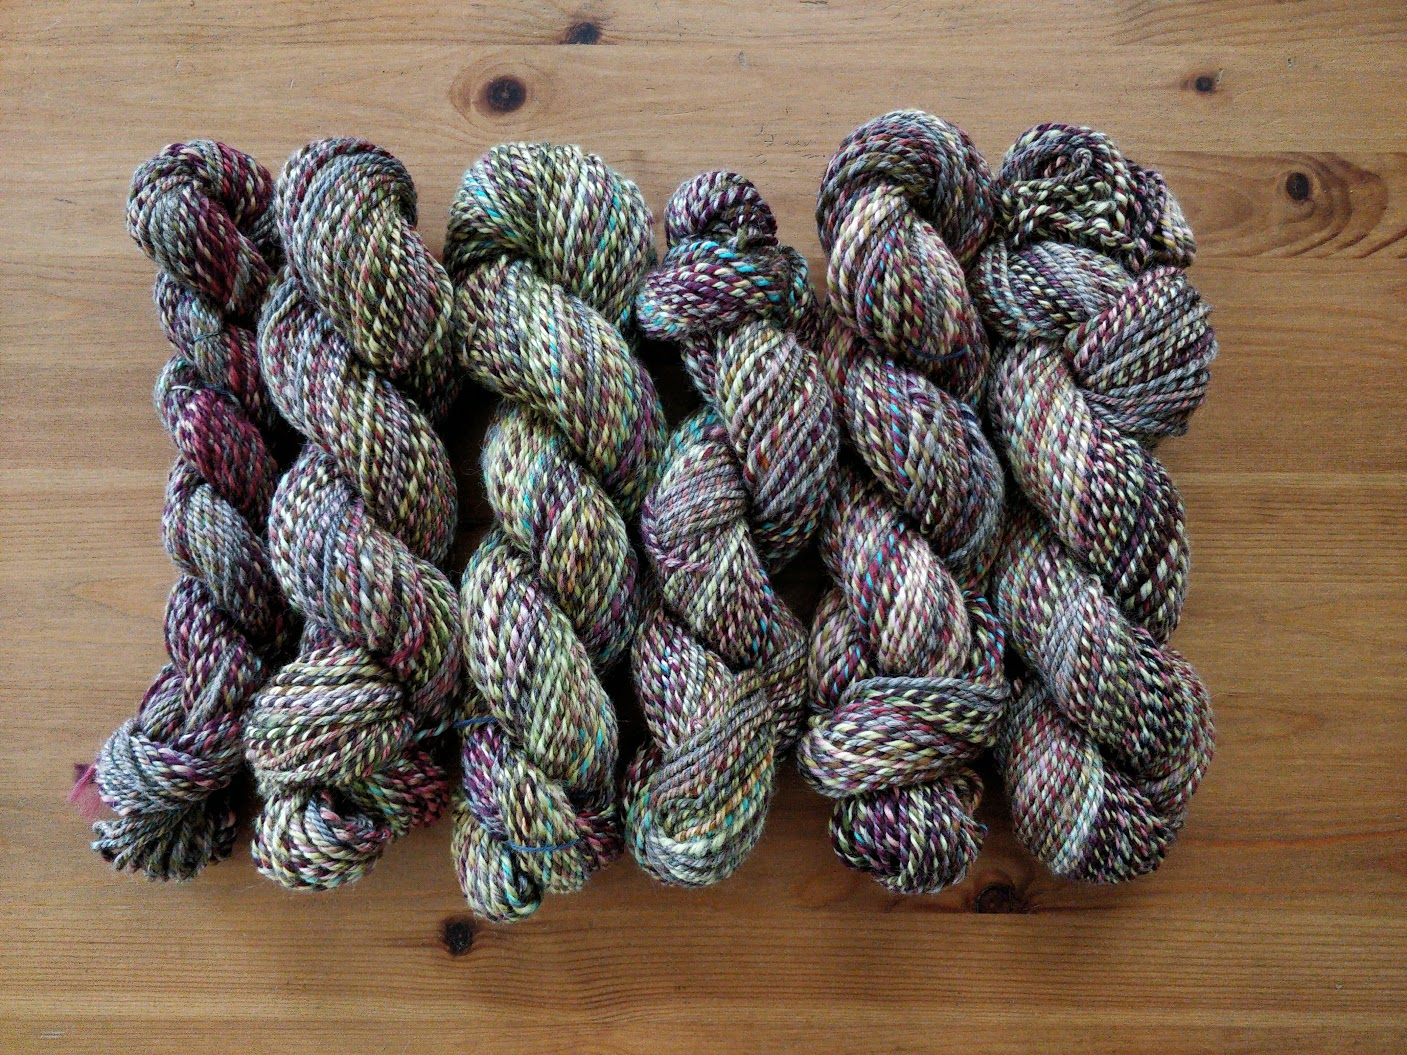 Several multi-coloured skeins of handspun yarn